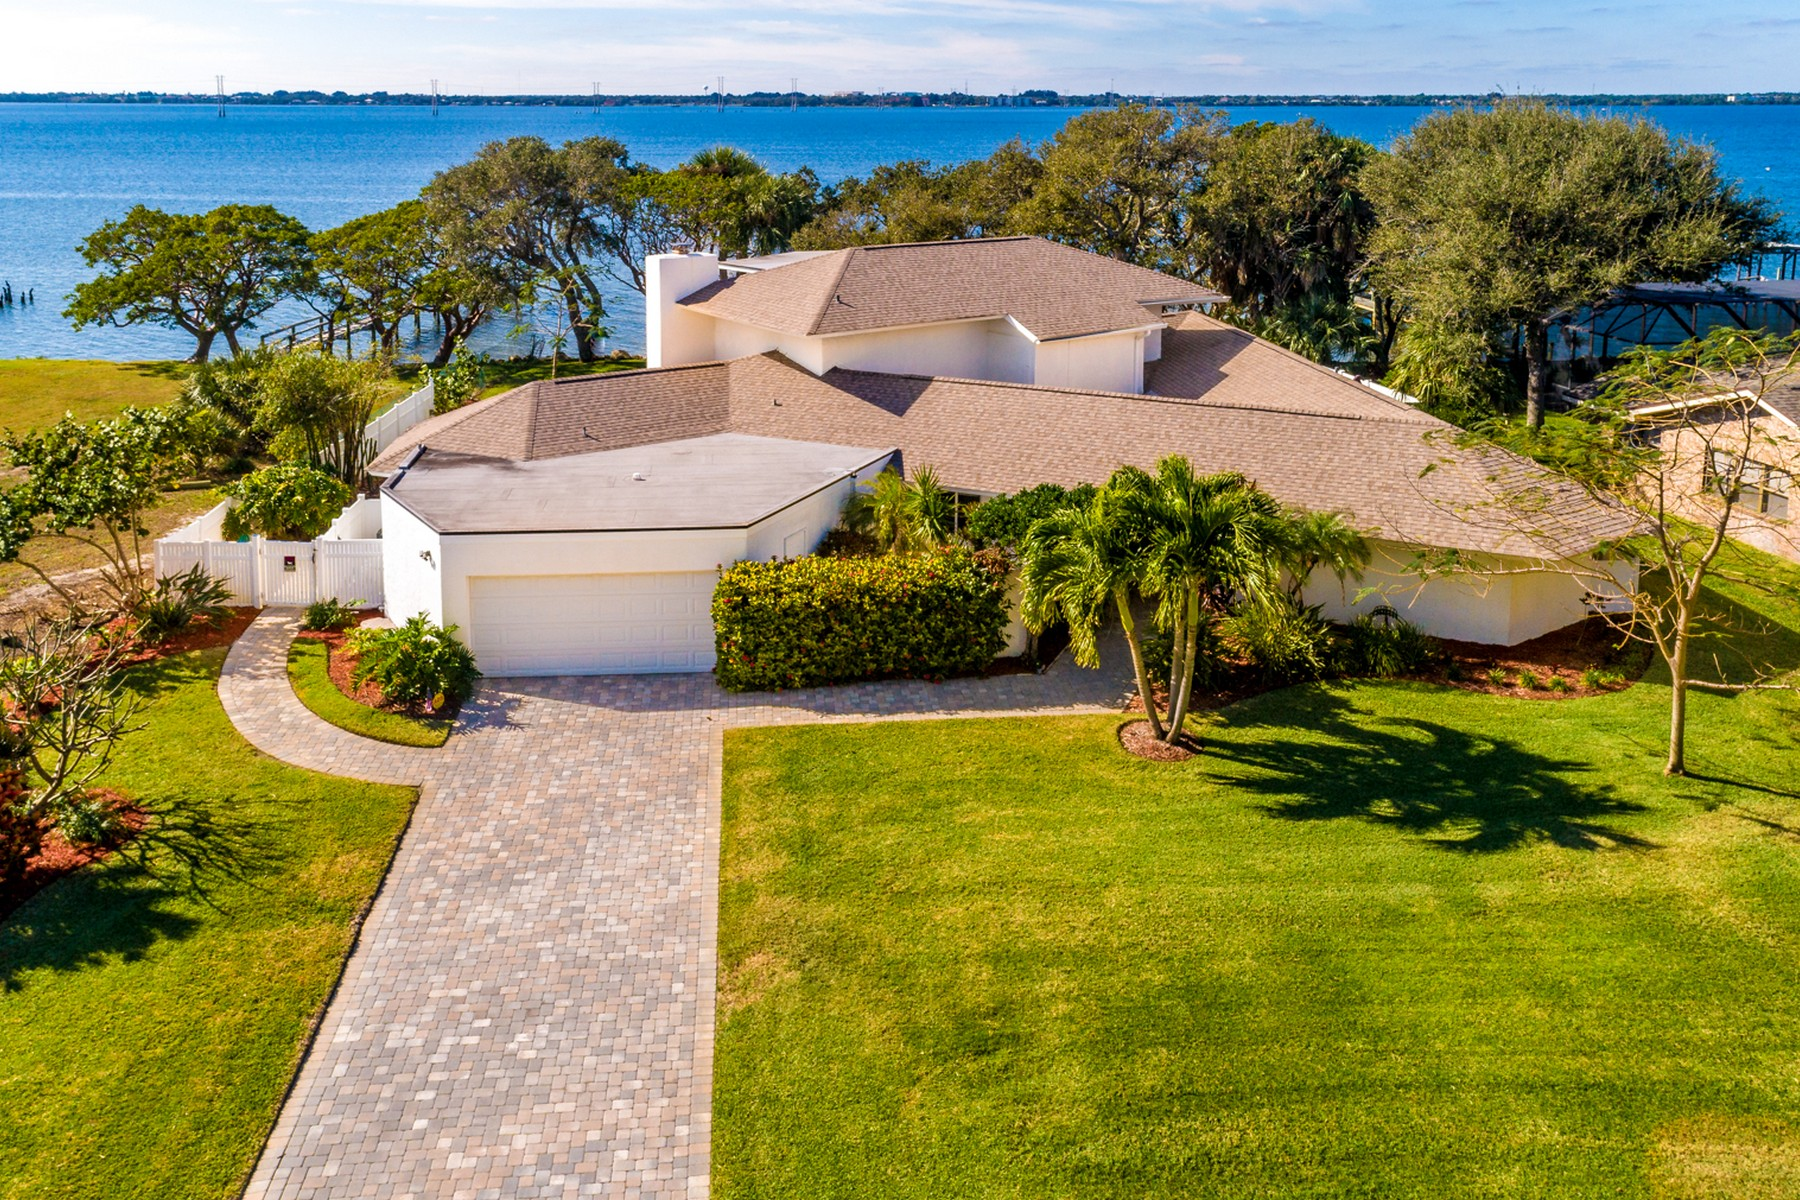 Single Family Homes for Sale at Large Custom Built Waterfront Pool Home 2160 S River Road Melbourne Beach, Florida 32951 United States